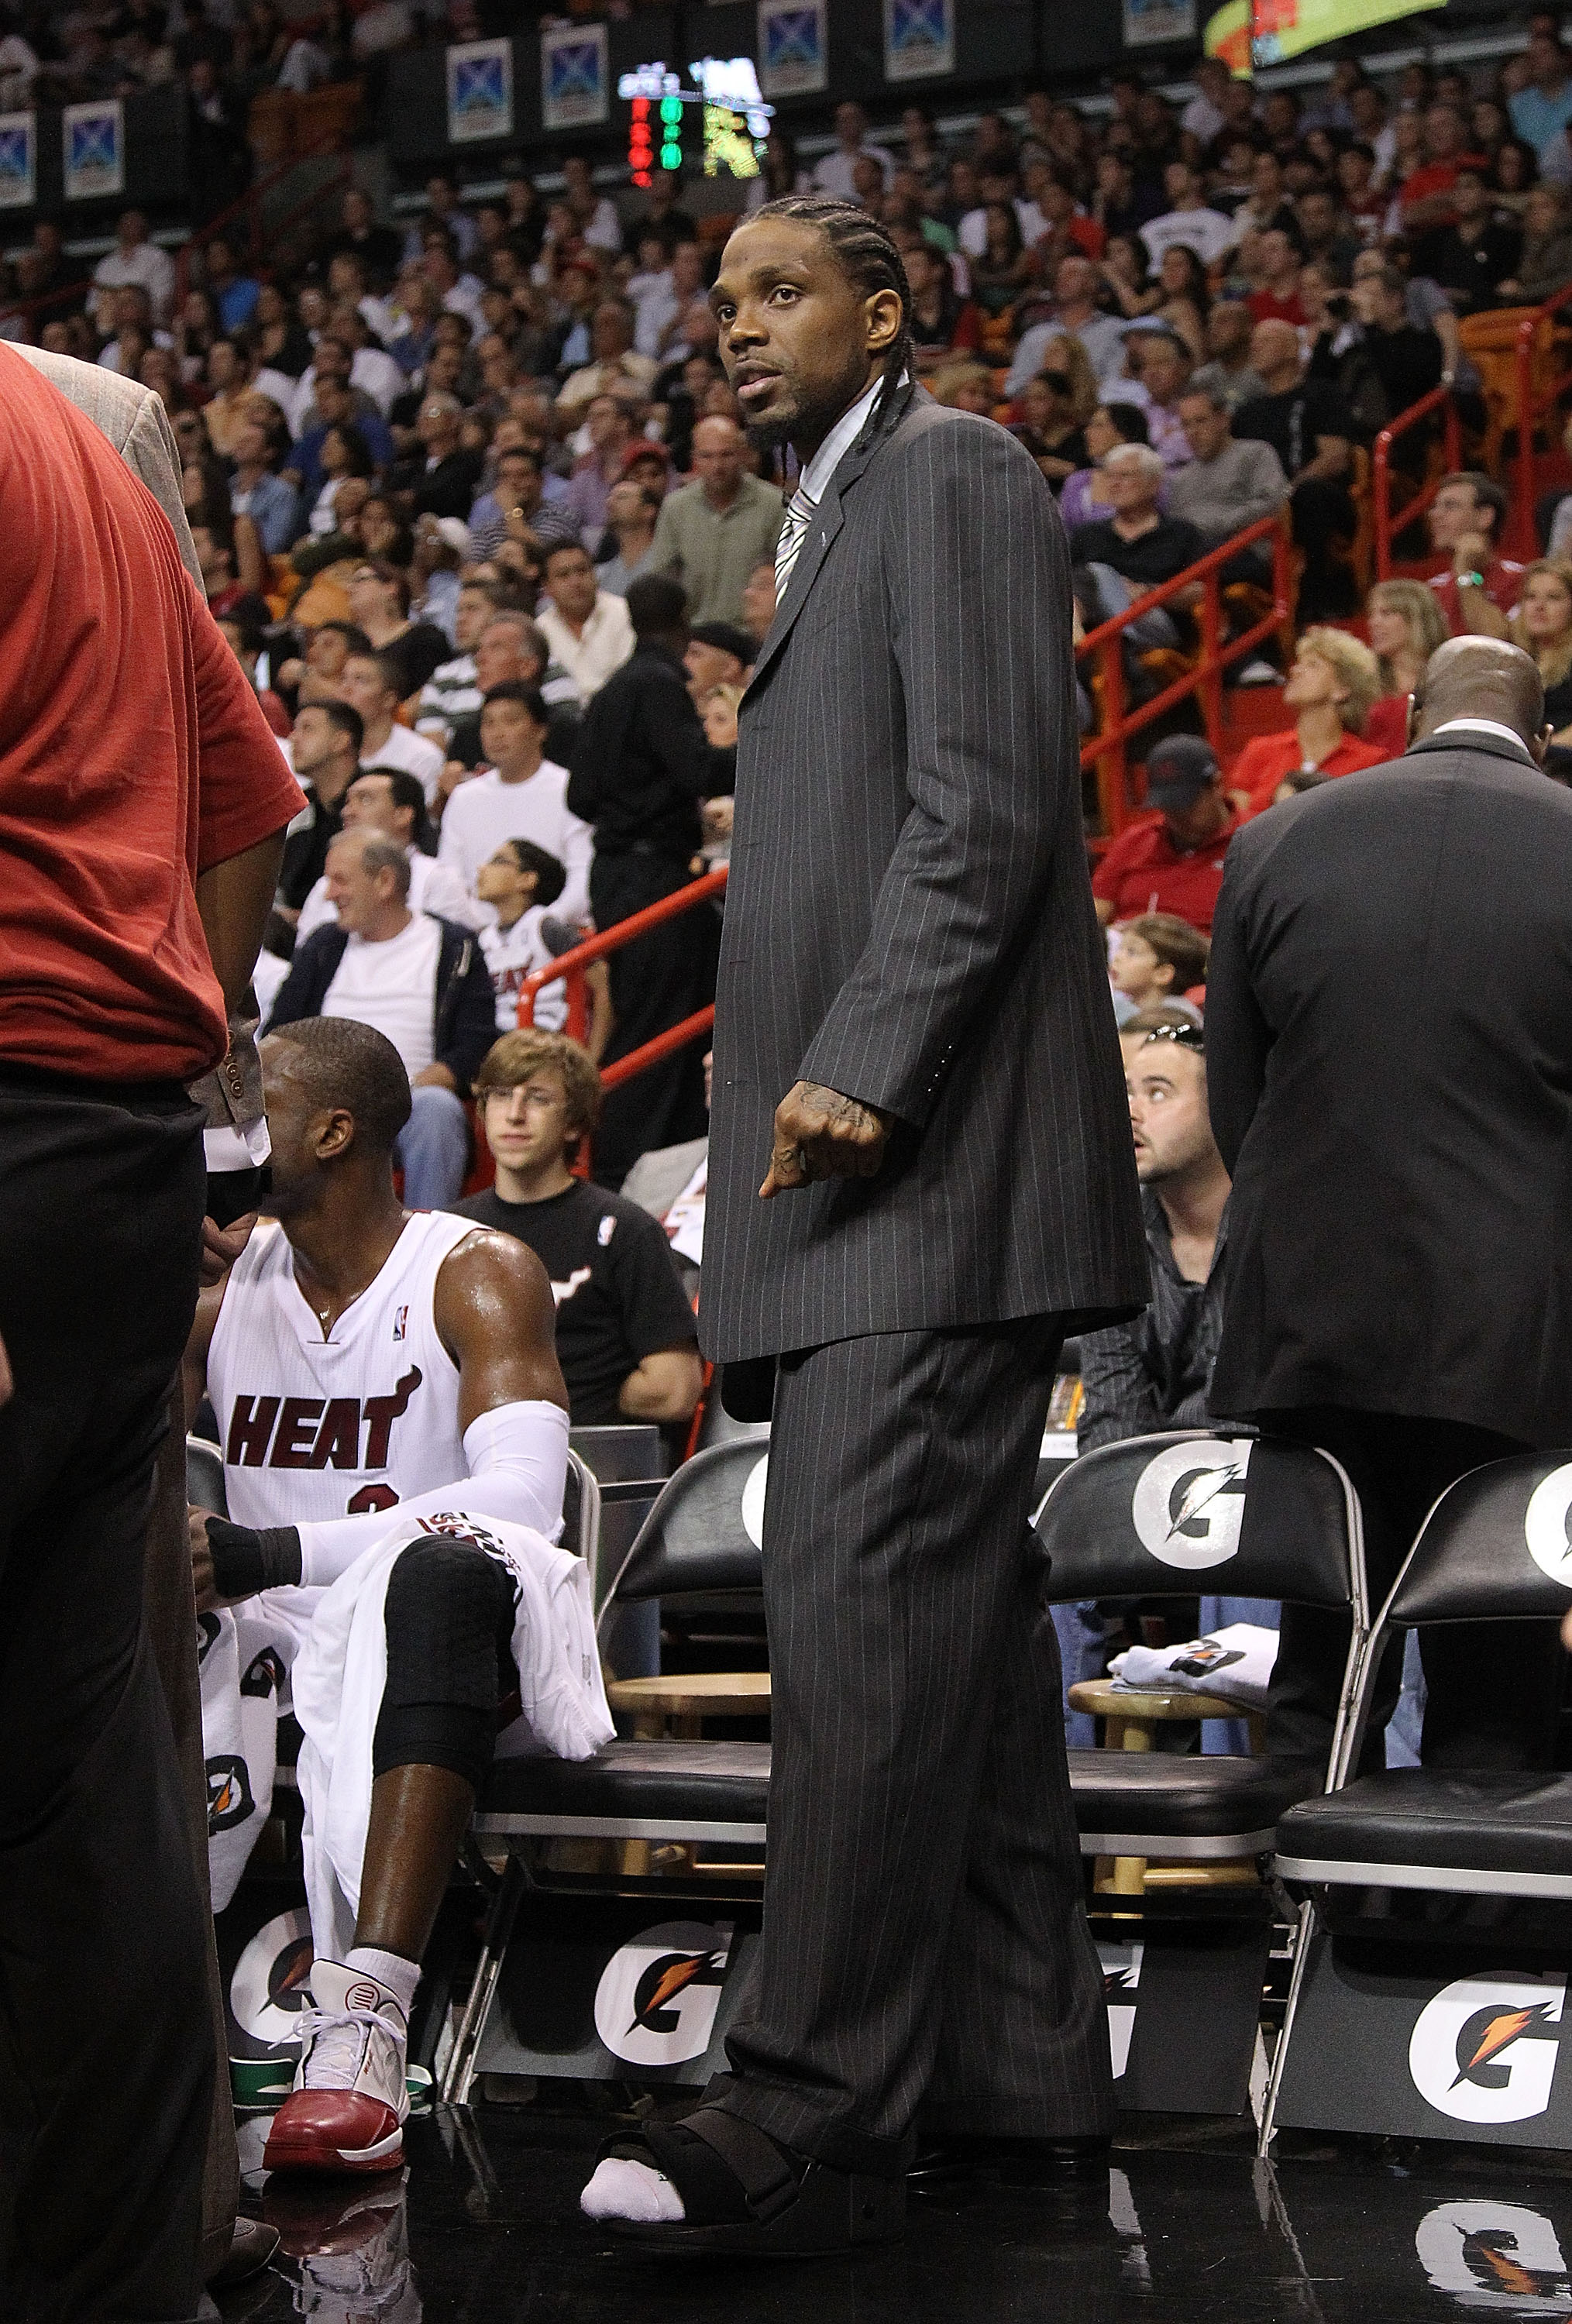 MIAMI - NOVEMBER 22: Udonis Haslem #40 of the Miami Heat waits on the sidlines with an injured foot before having surgery during a game against the Indiana Pacers at American Airlines Arena on November 22, 2010 in Miami, Florida. NOTE TO USER: User expres